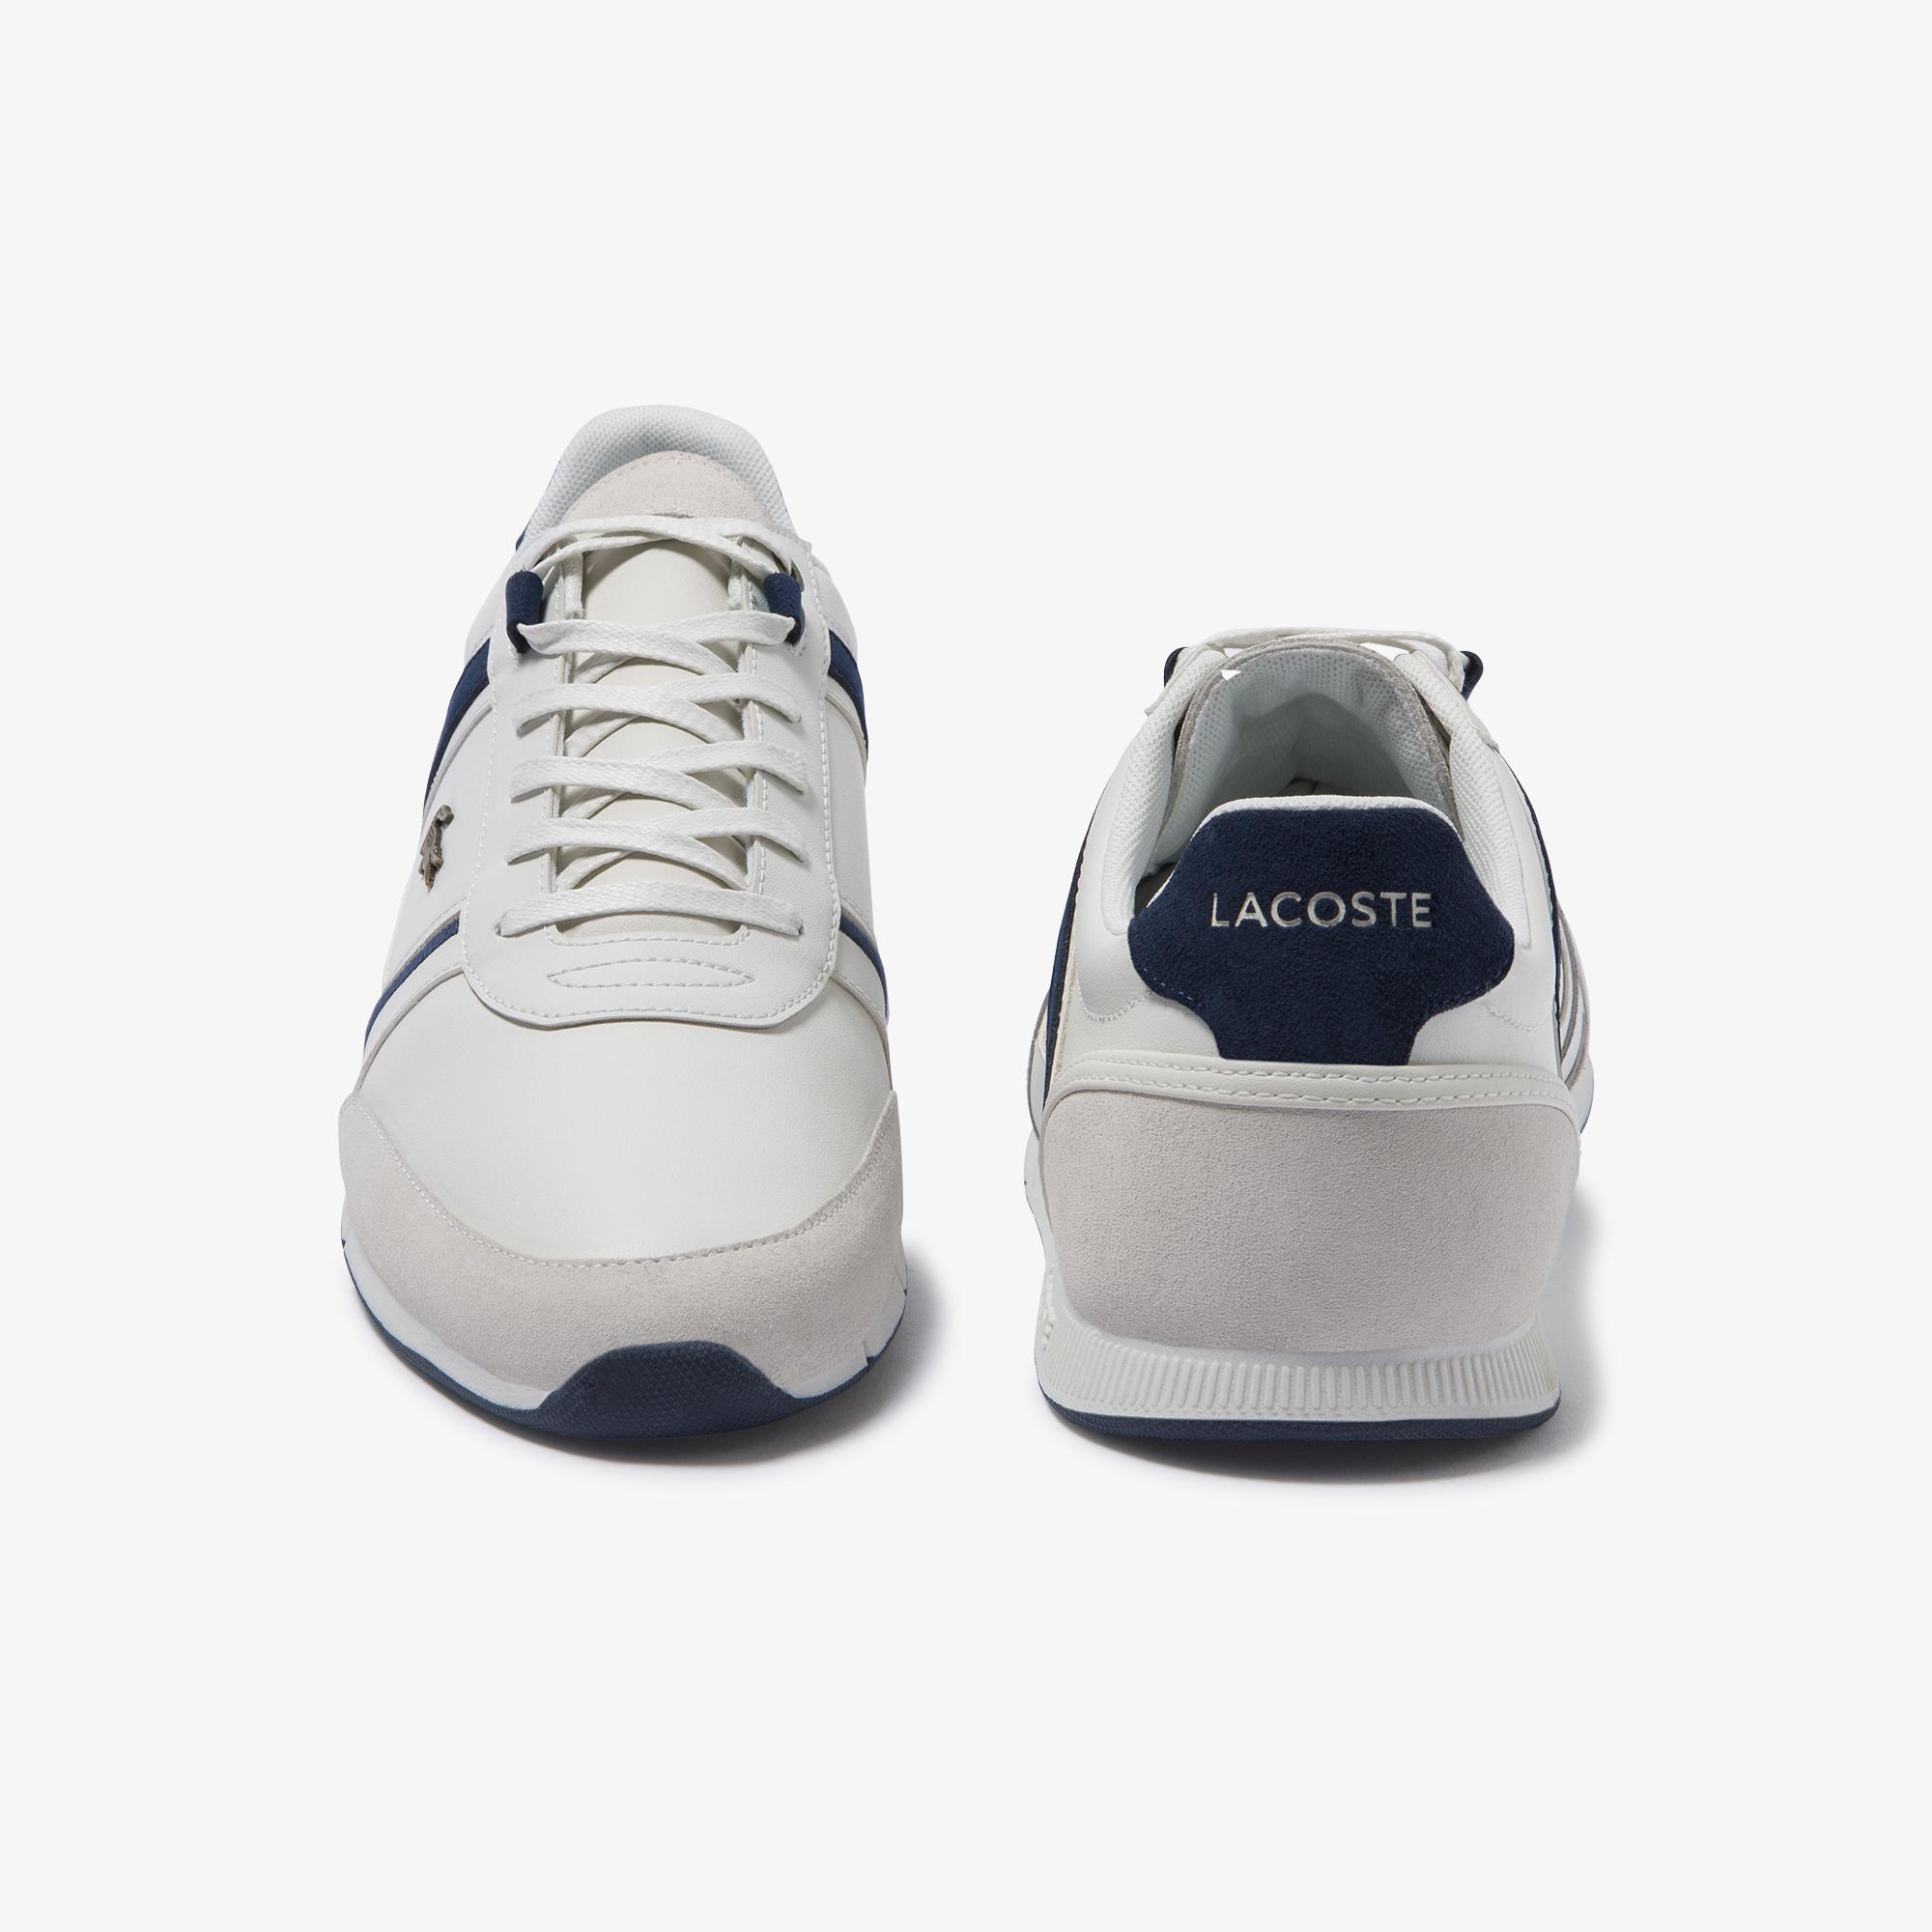 Lacoste Men's Menerva 120 1 Cma Casual Leather Shoes